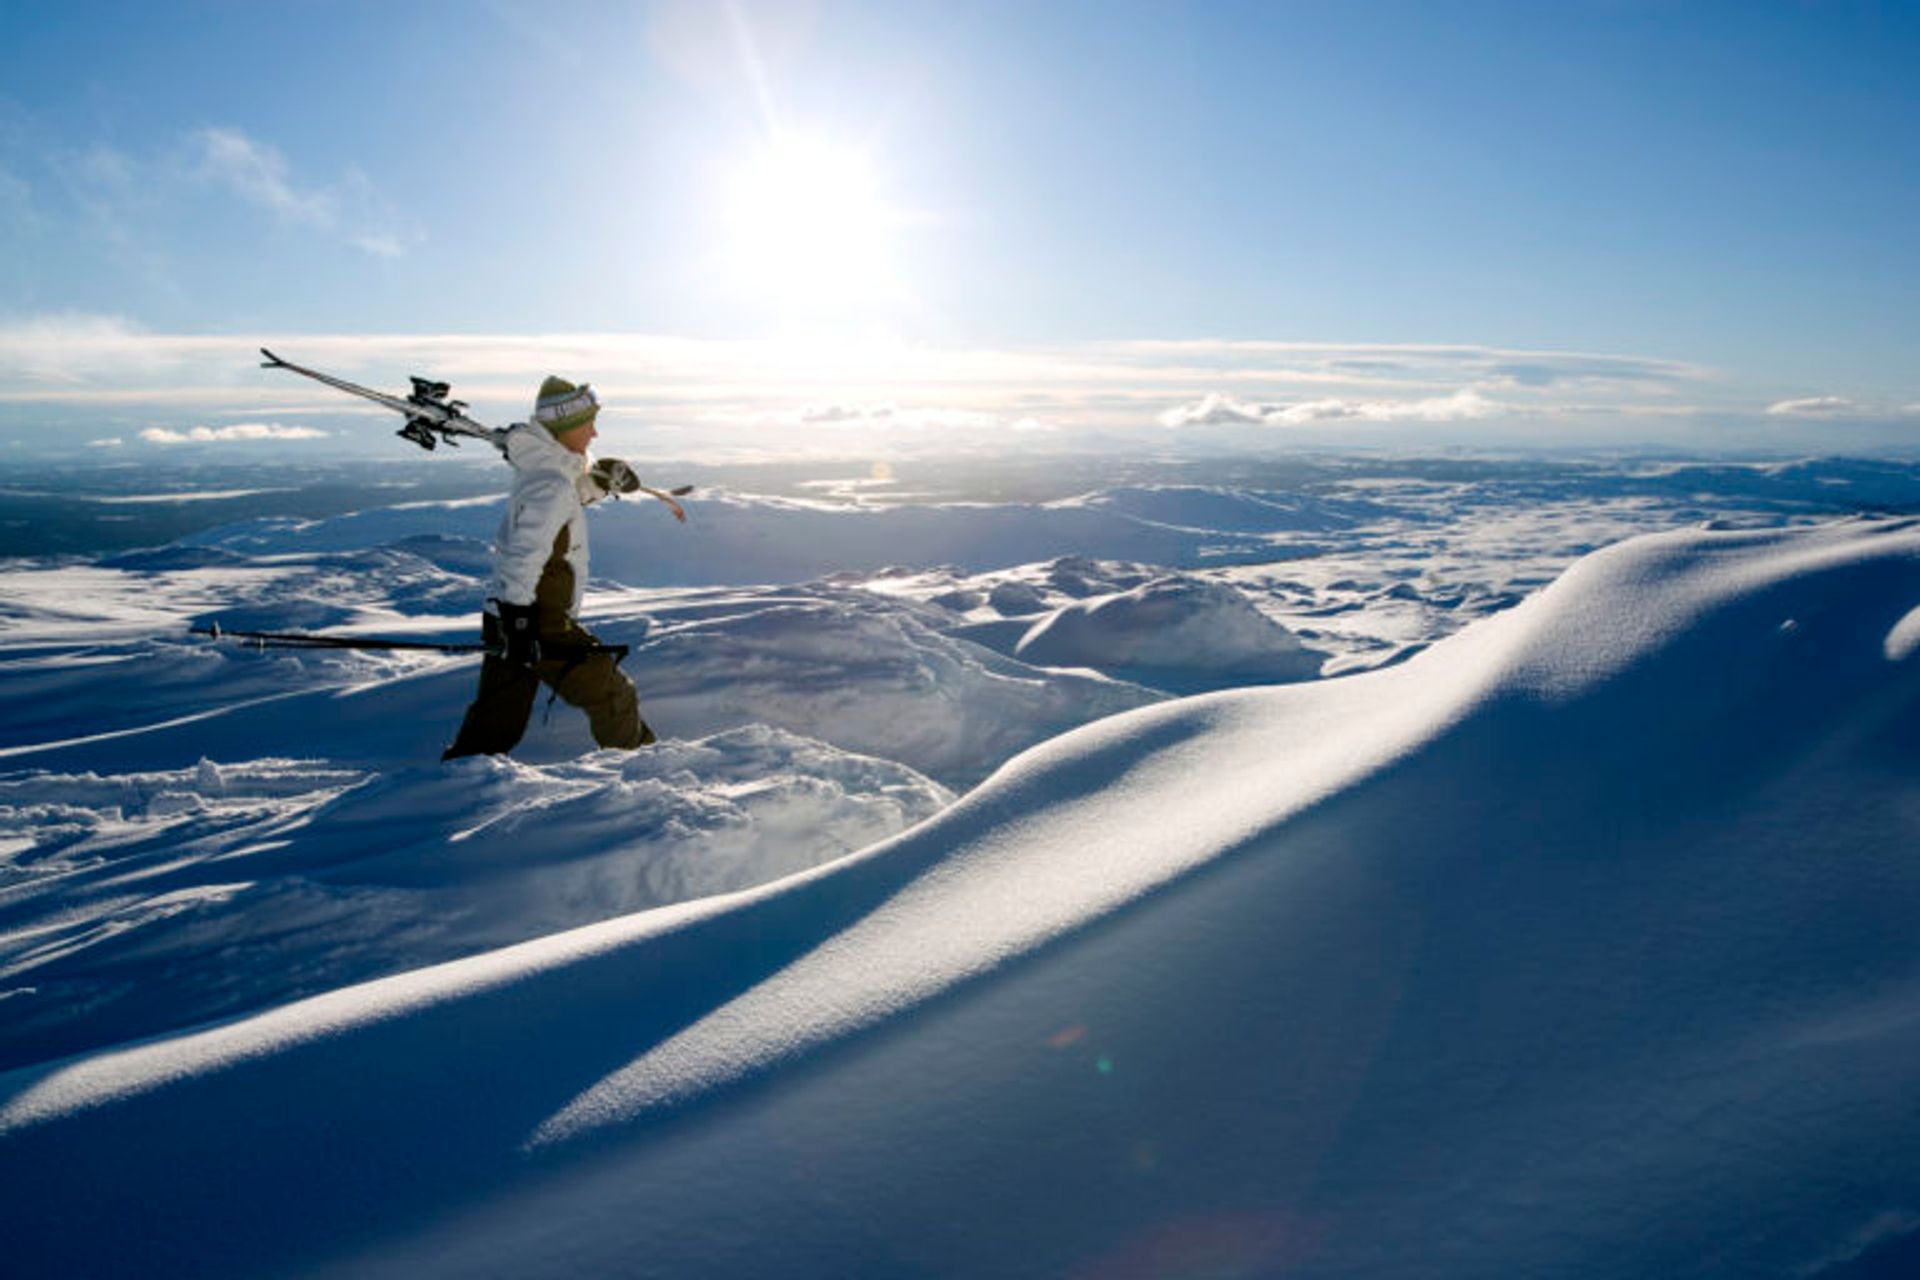 A person walking with skis on a snowy mountain.